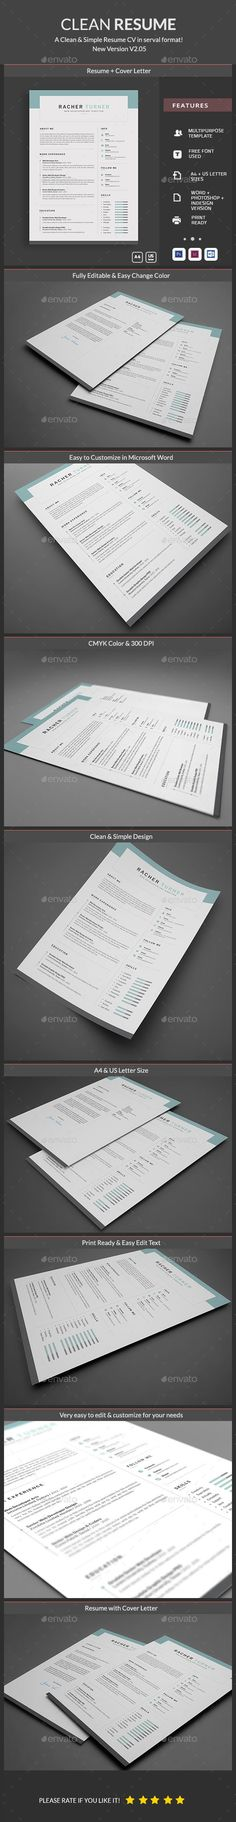 Professional Resume Template   CV Template for Word Cover Resume - artistic resume